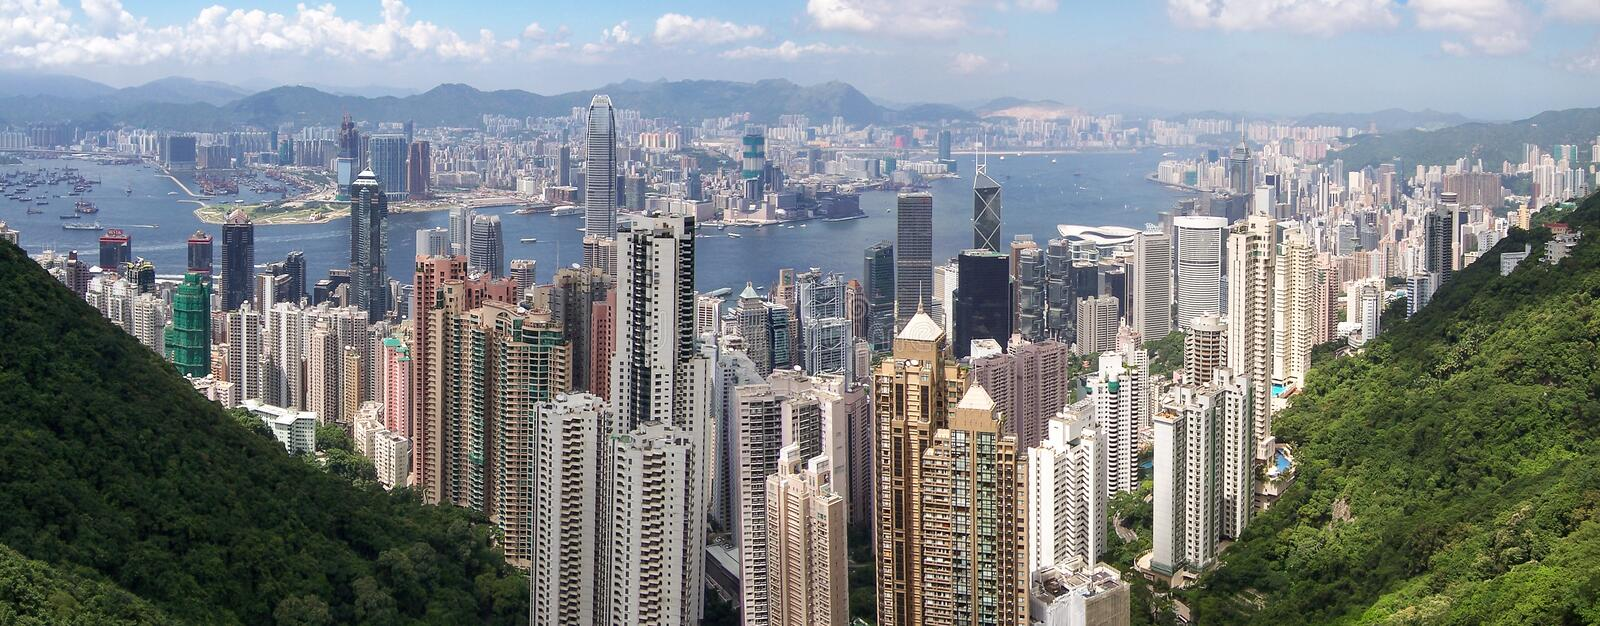 Panorama of Hong Kong etween hills and the harbor from Victoria Peak China. Panorama view of Hong Kong city and the harbor on cloudy day stock photo